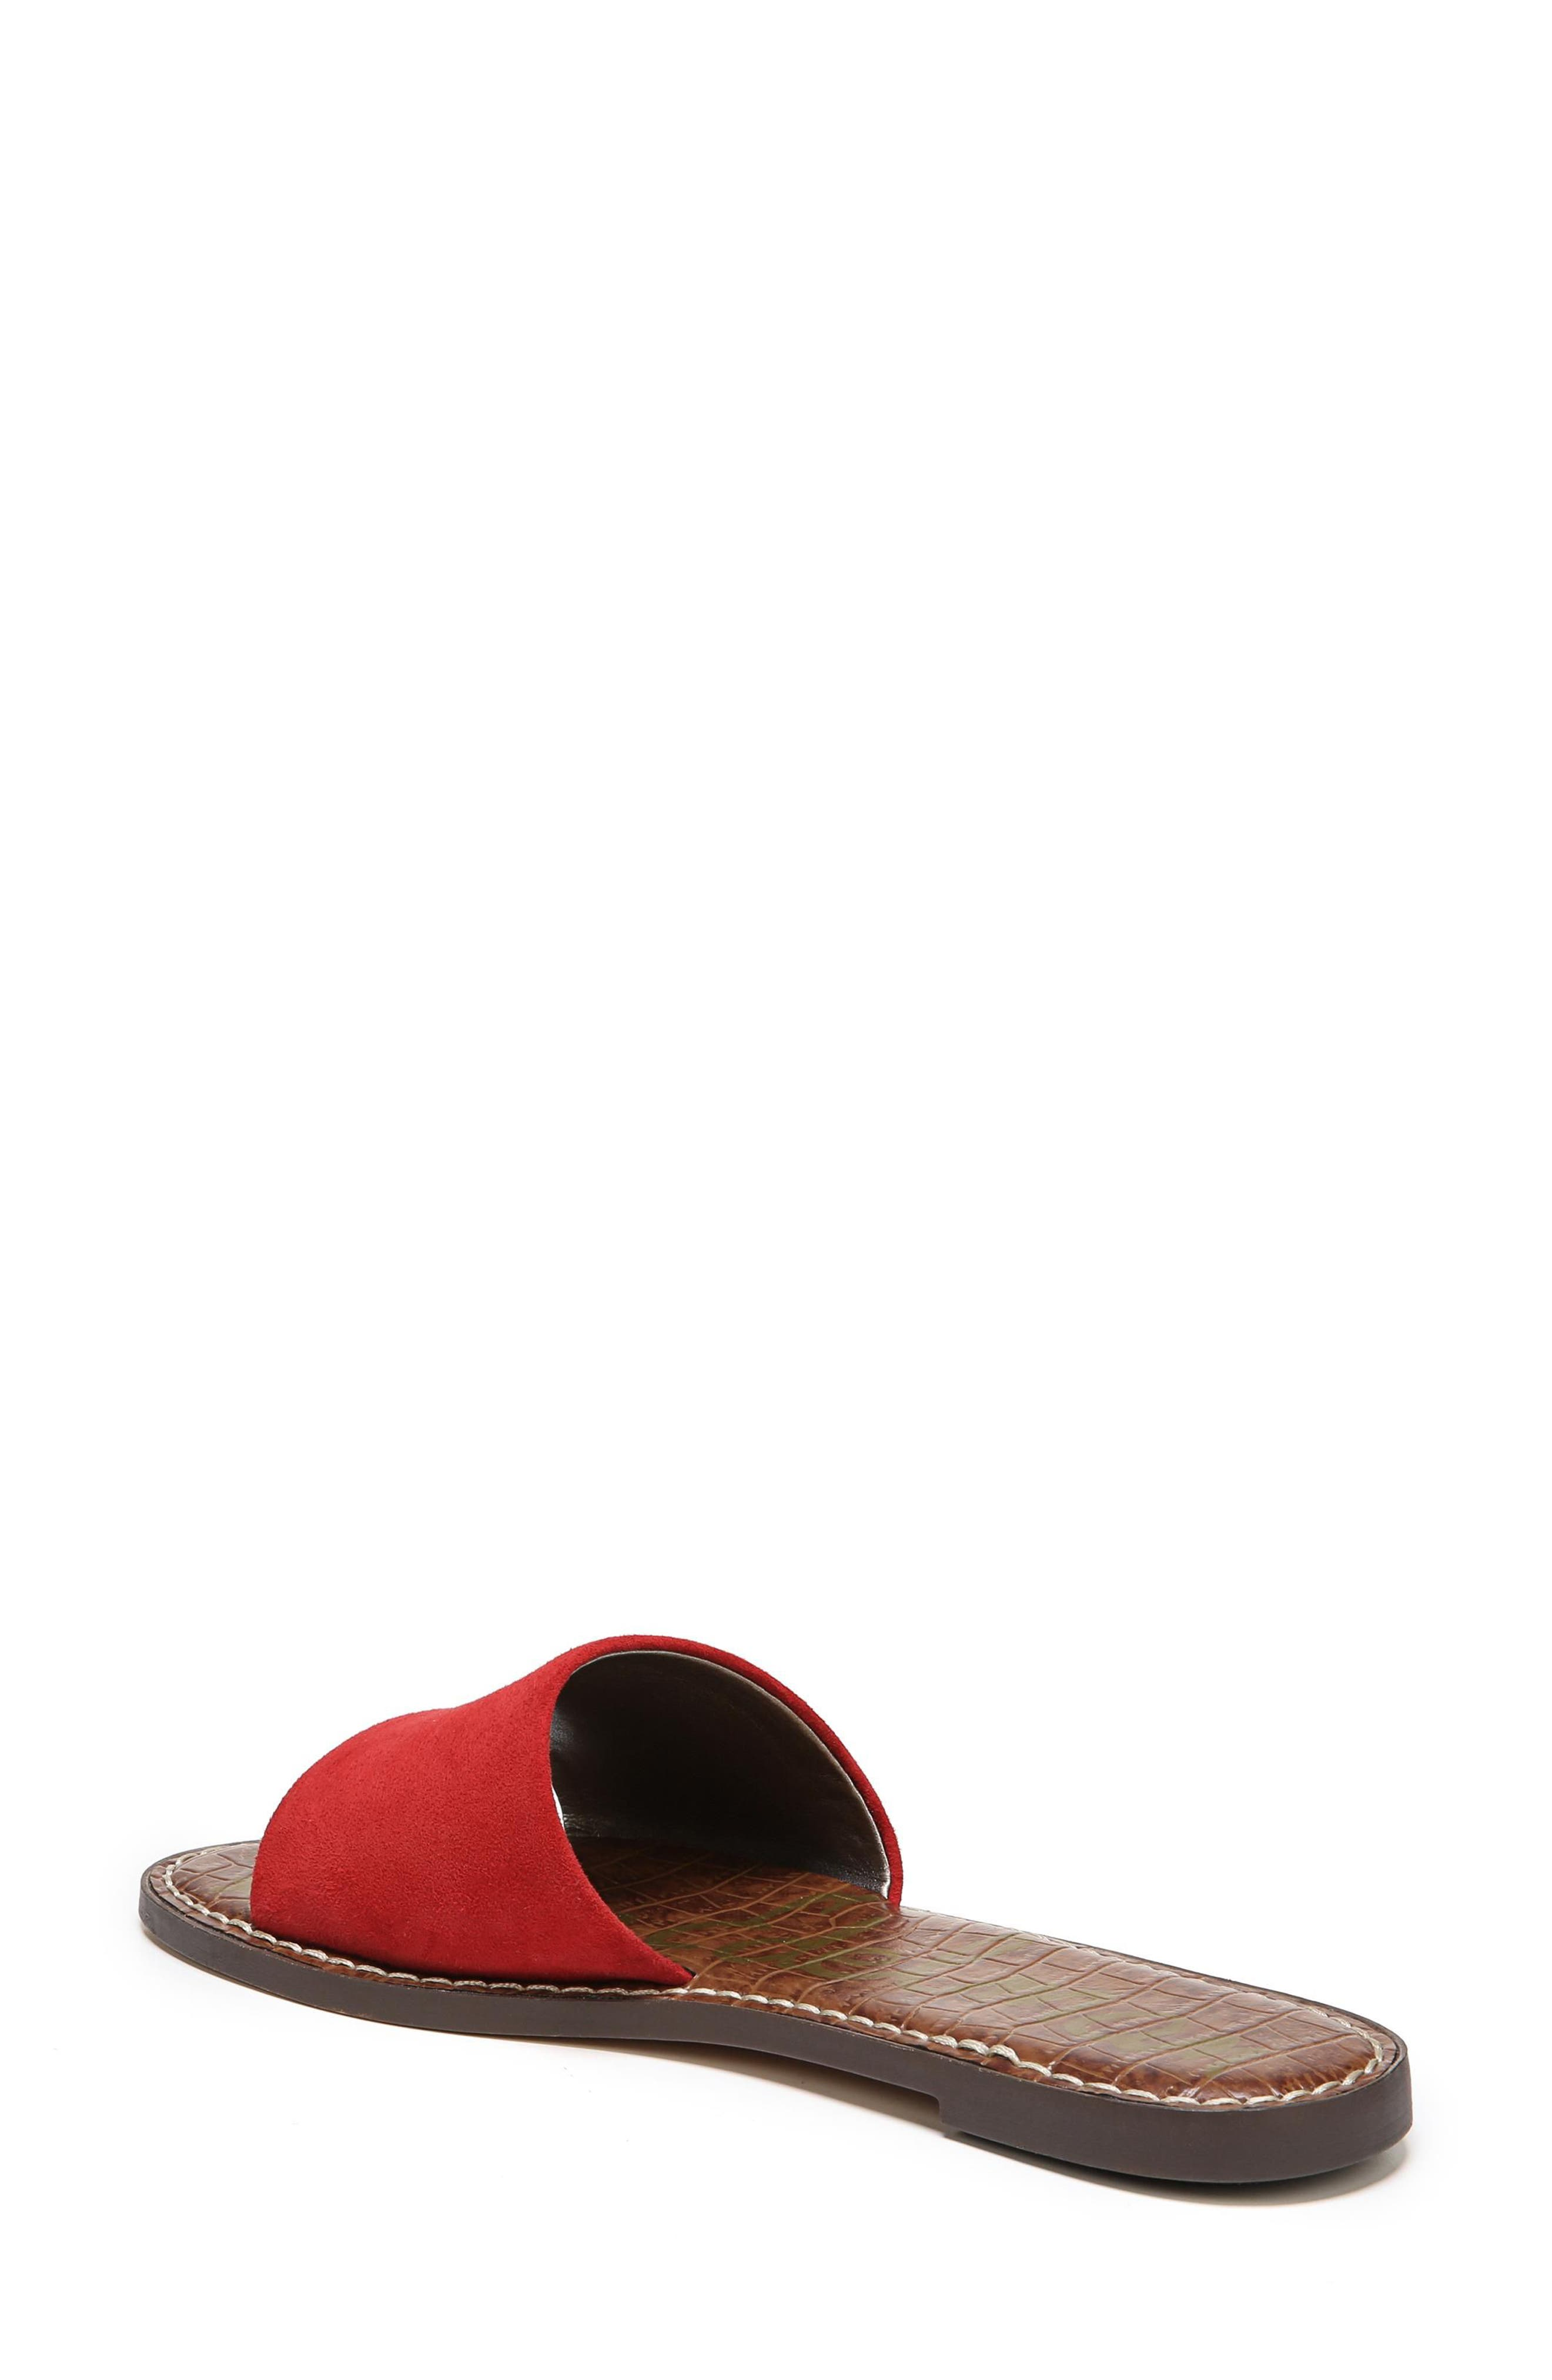 Gio Slide Sandal,                             Alternate thumbnail 2, color,                             Red Suede